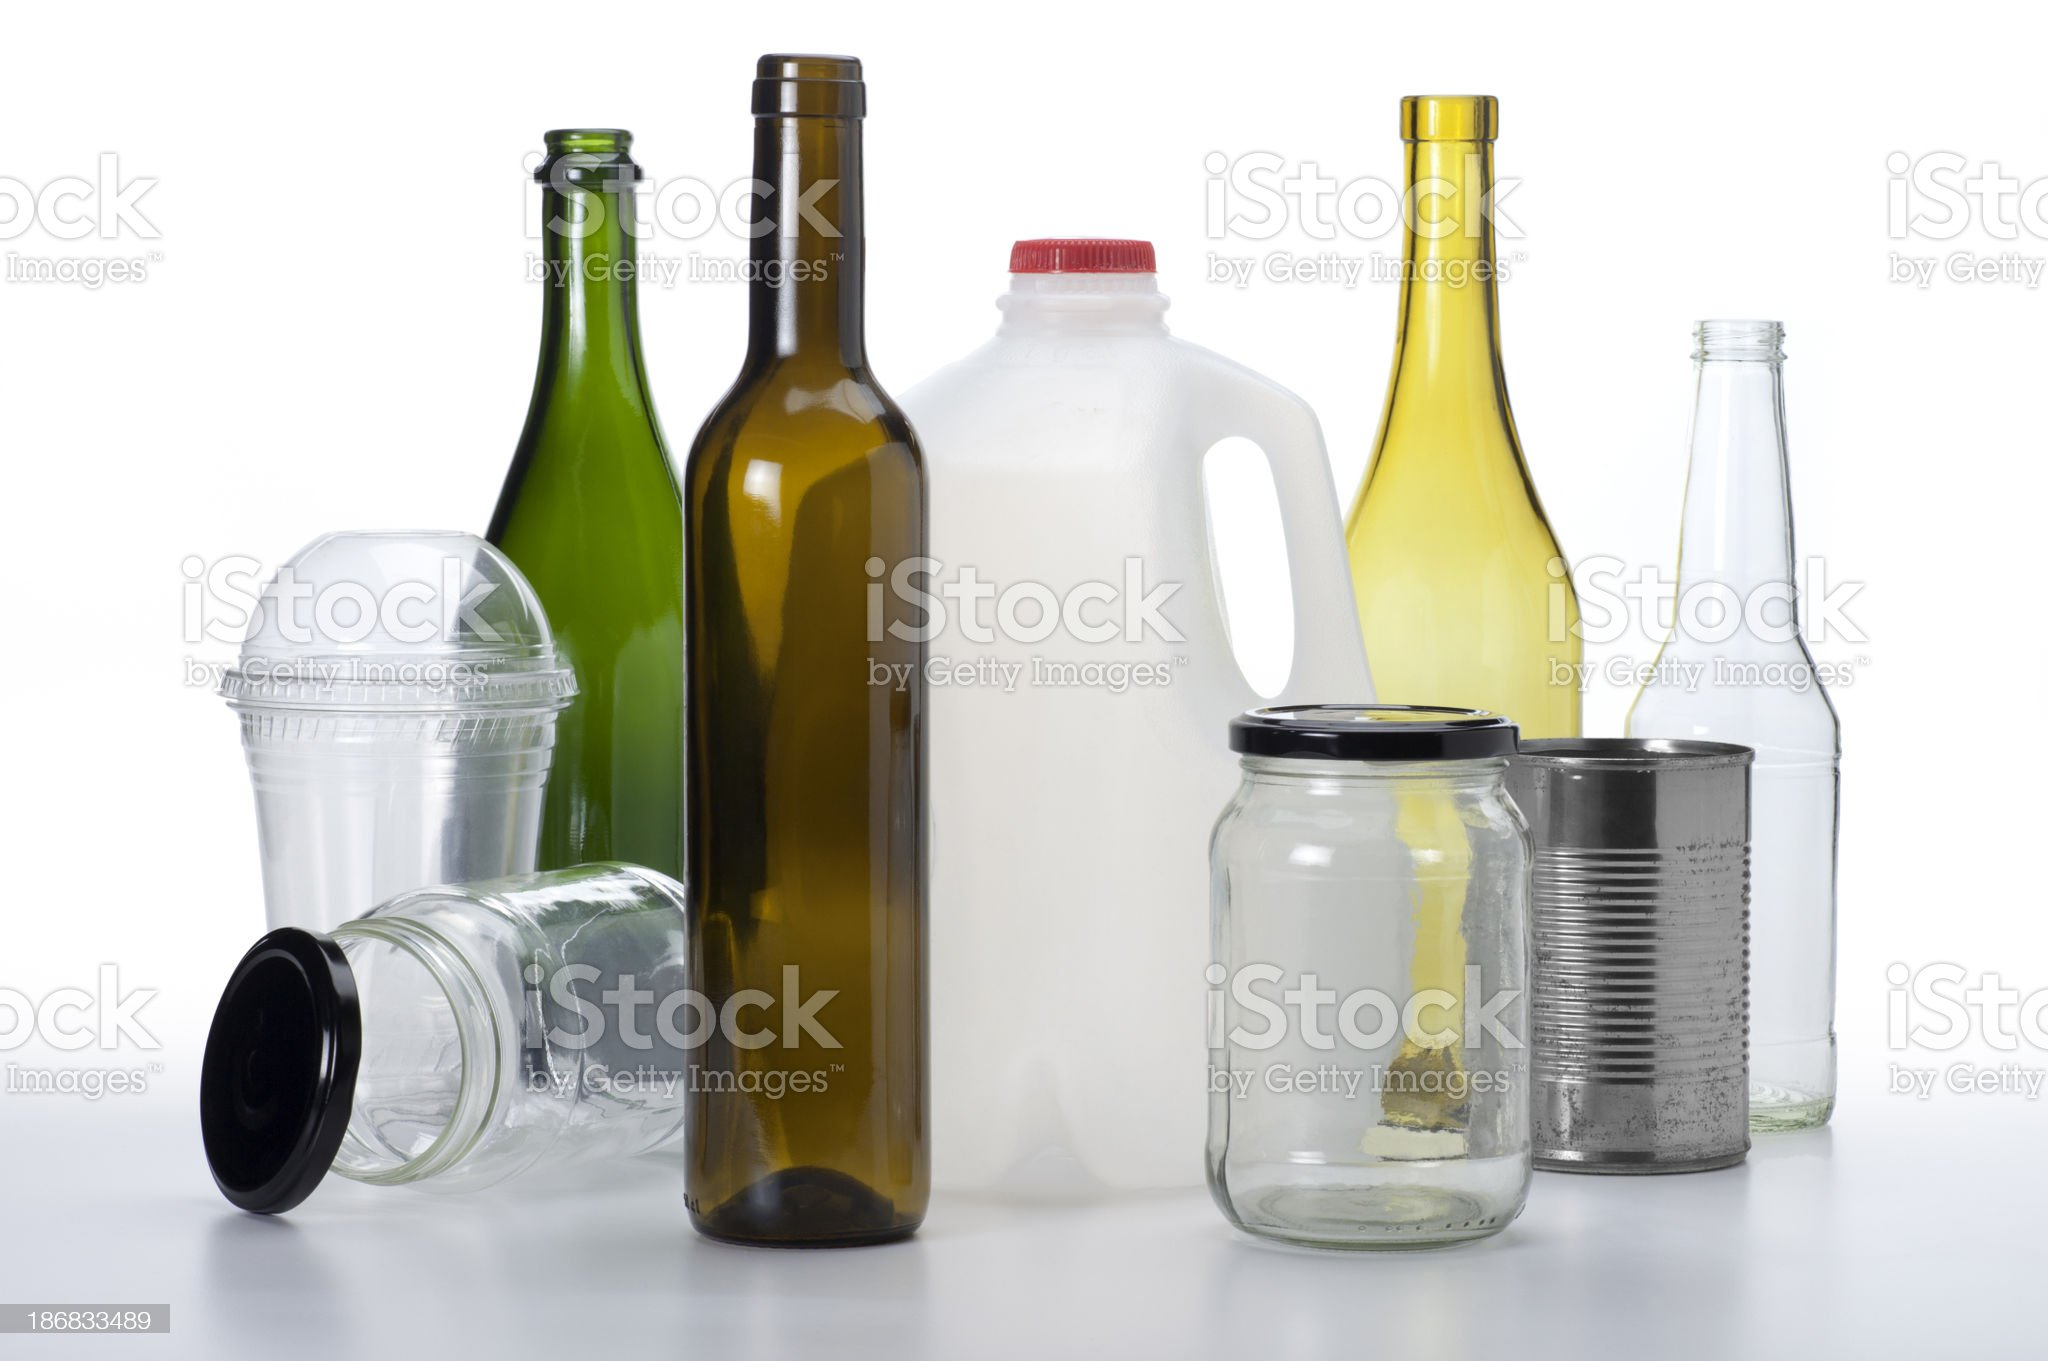 Bottles, Jars and Cans for Recyling royalty-free stock photo